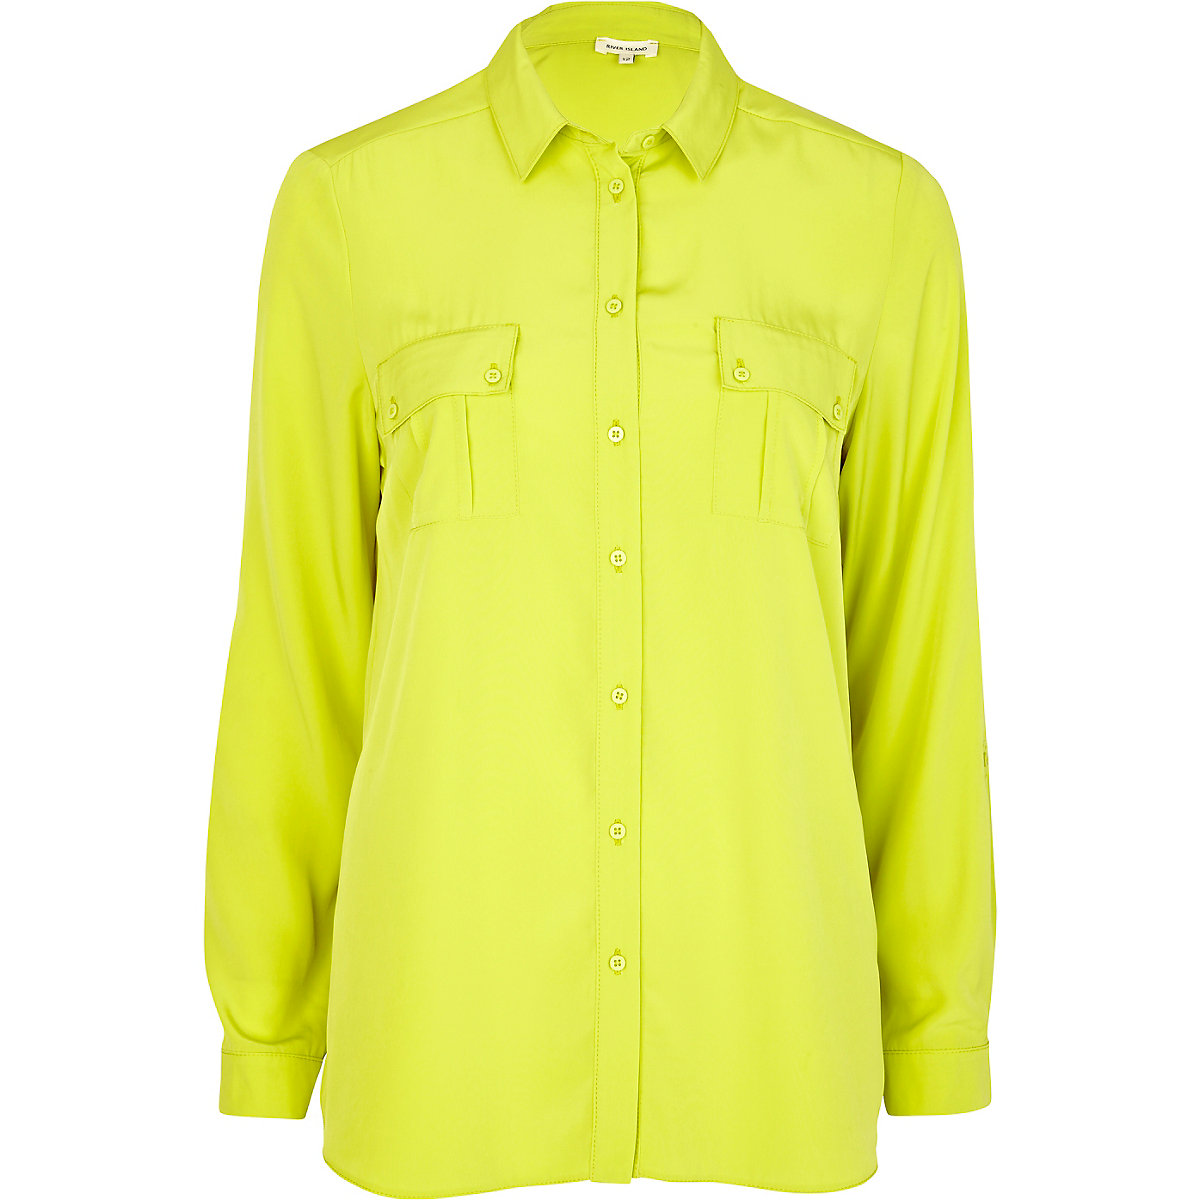 Bright lime green oversized shirt